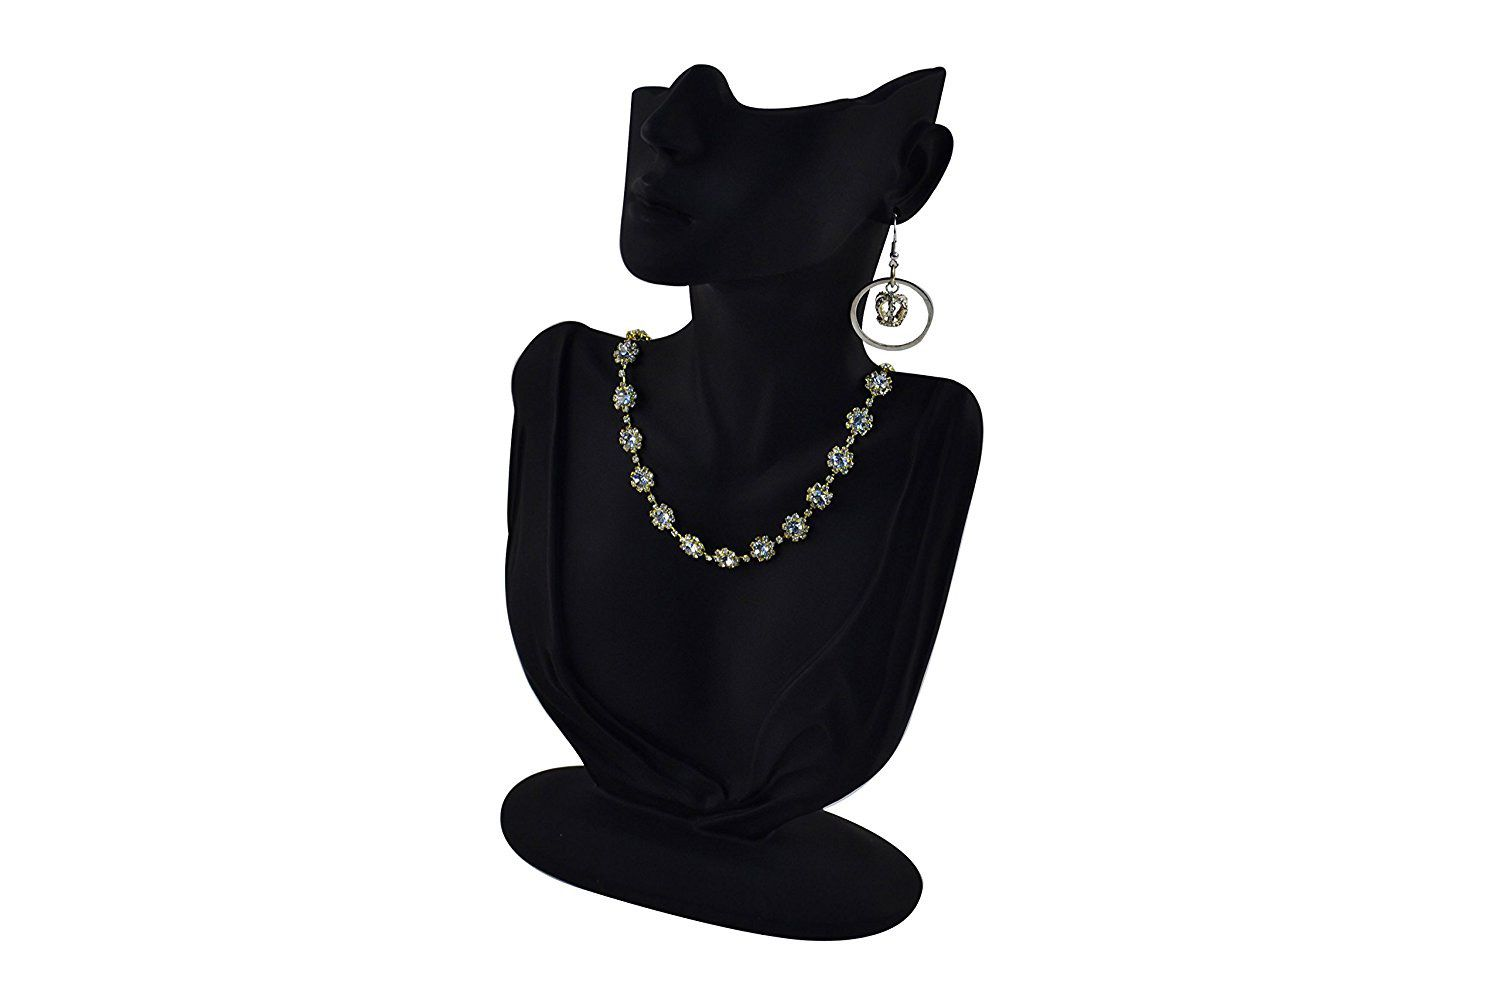 The 15 Best Mannequin Jewelry Holders Jewelry Jewelry Holders Statement Necklace